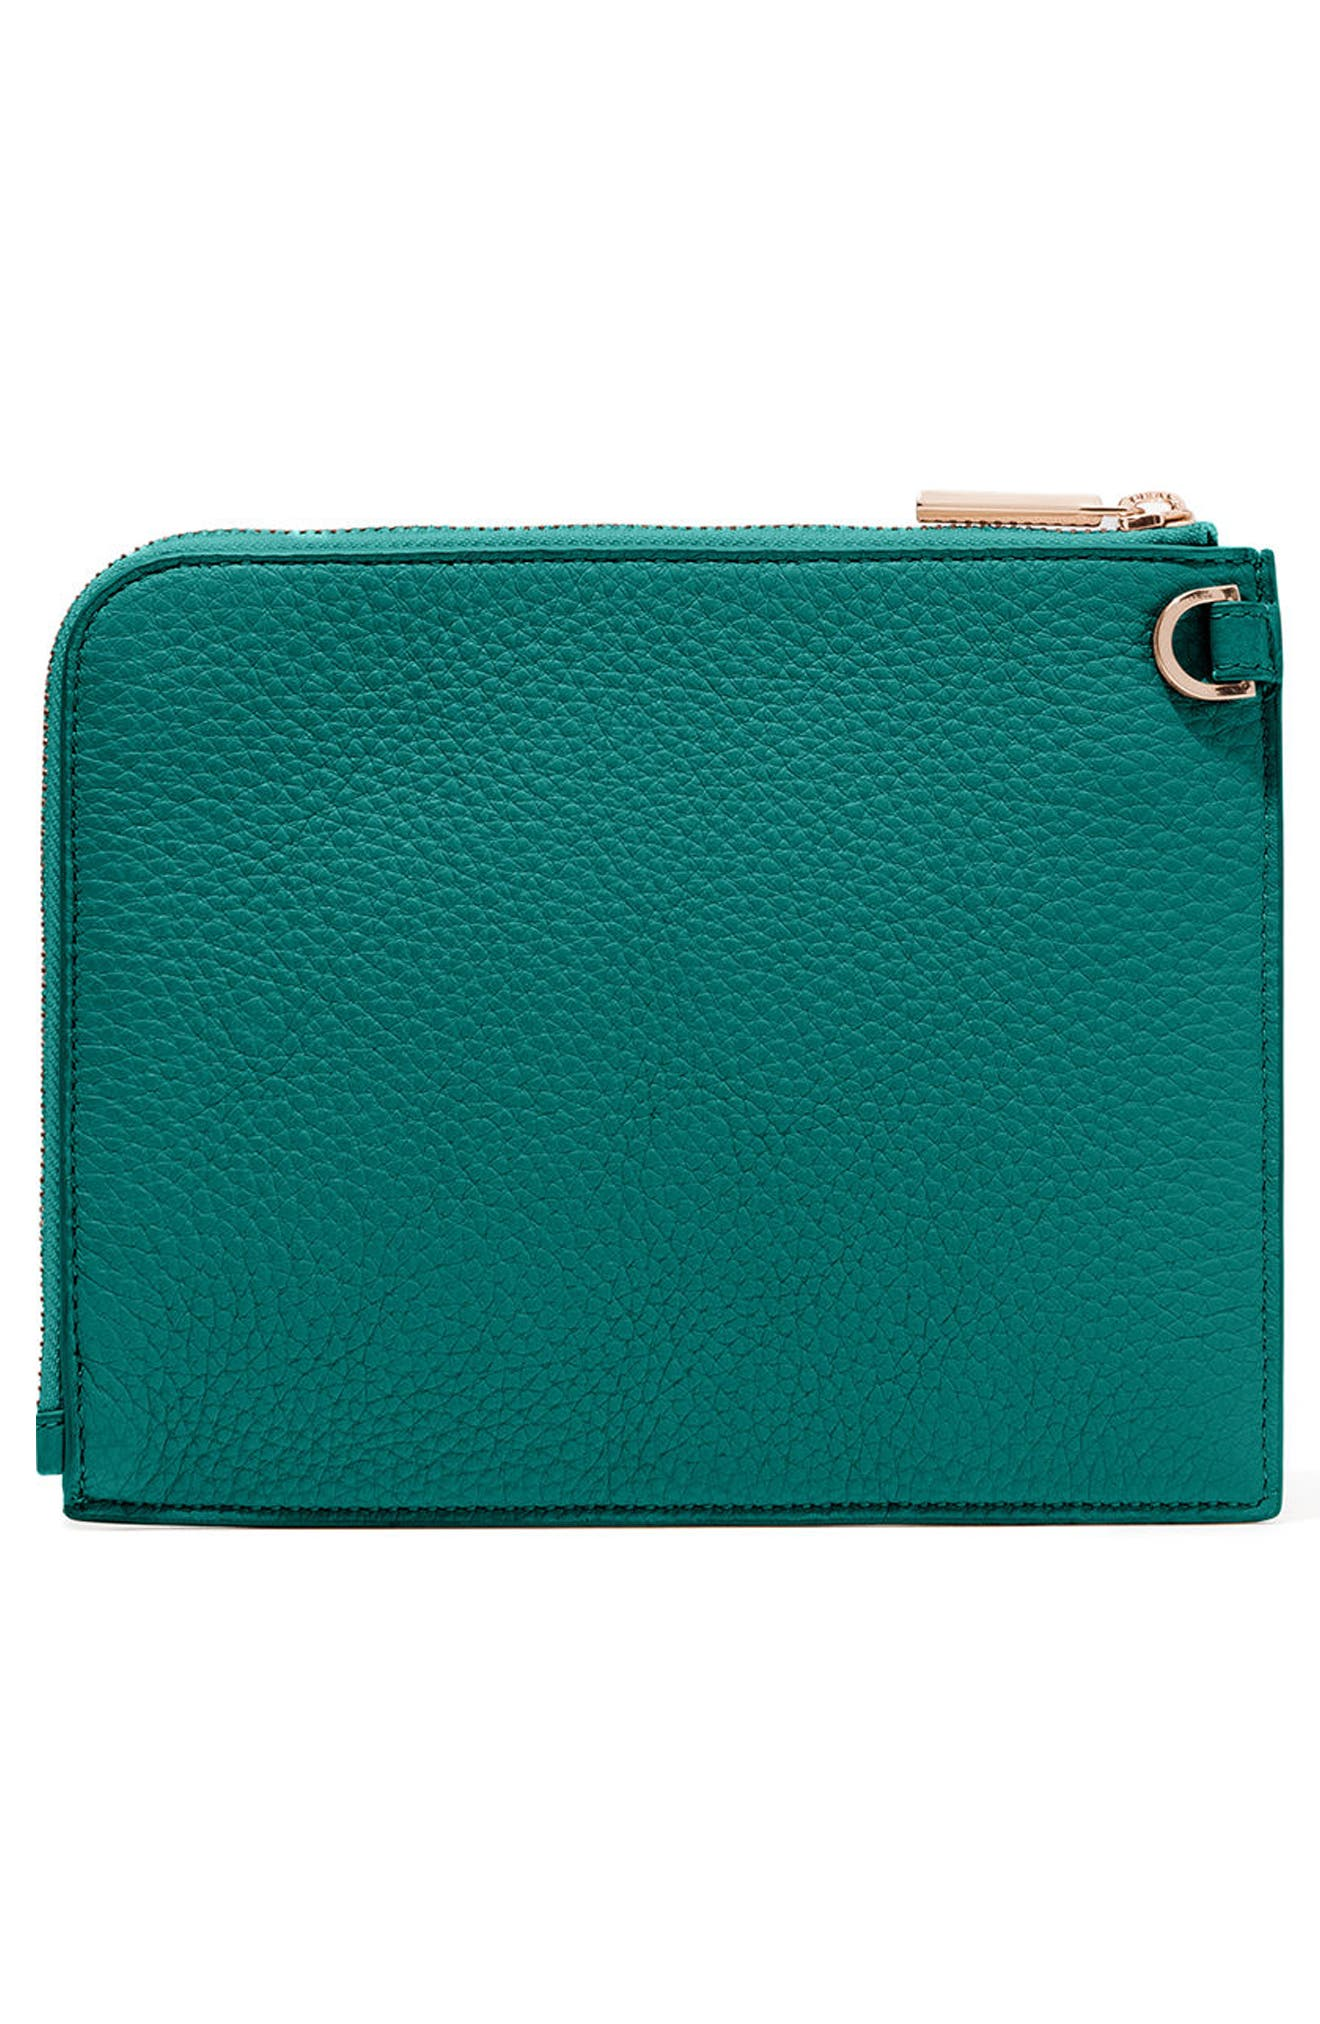 Small Elle Leather Clutch,                             Alternate thumbnail 22, color,